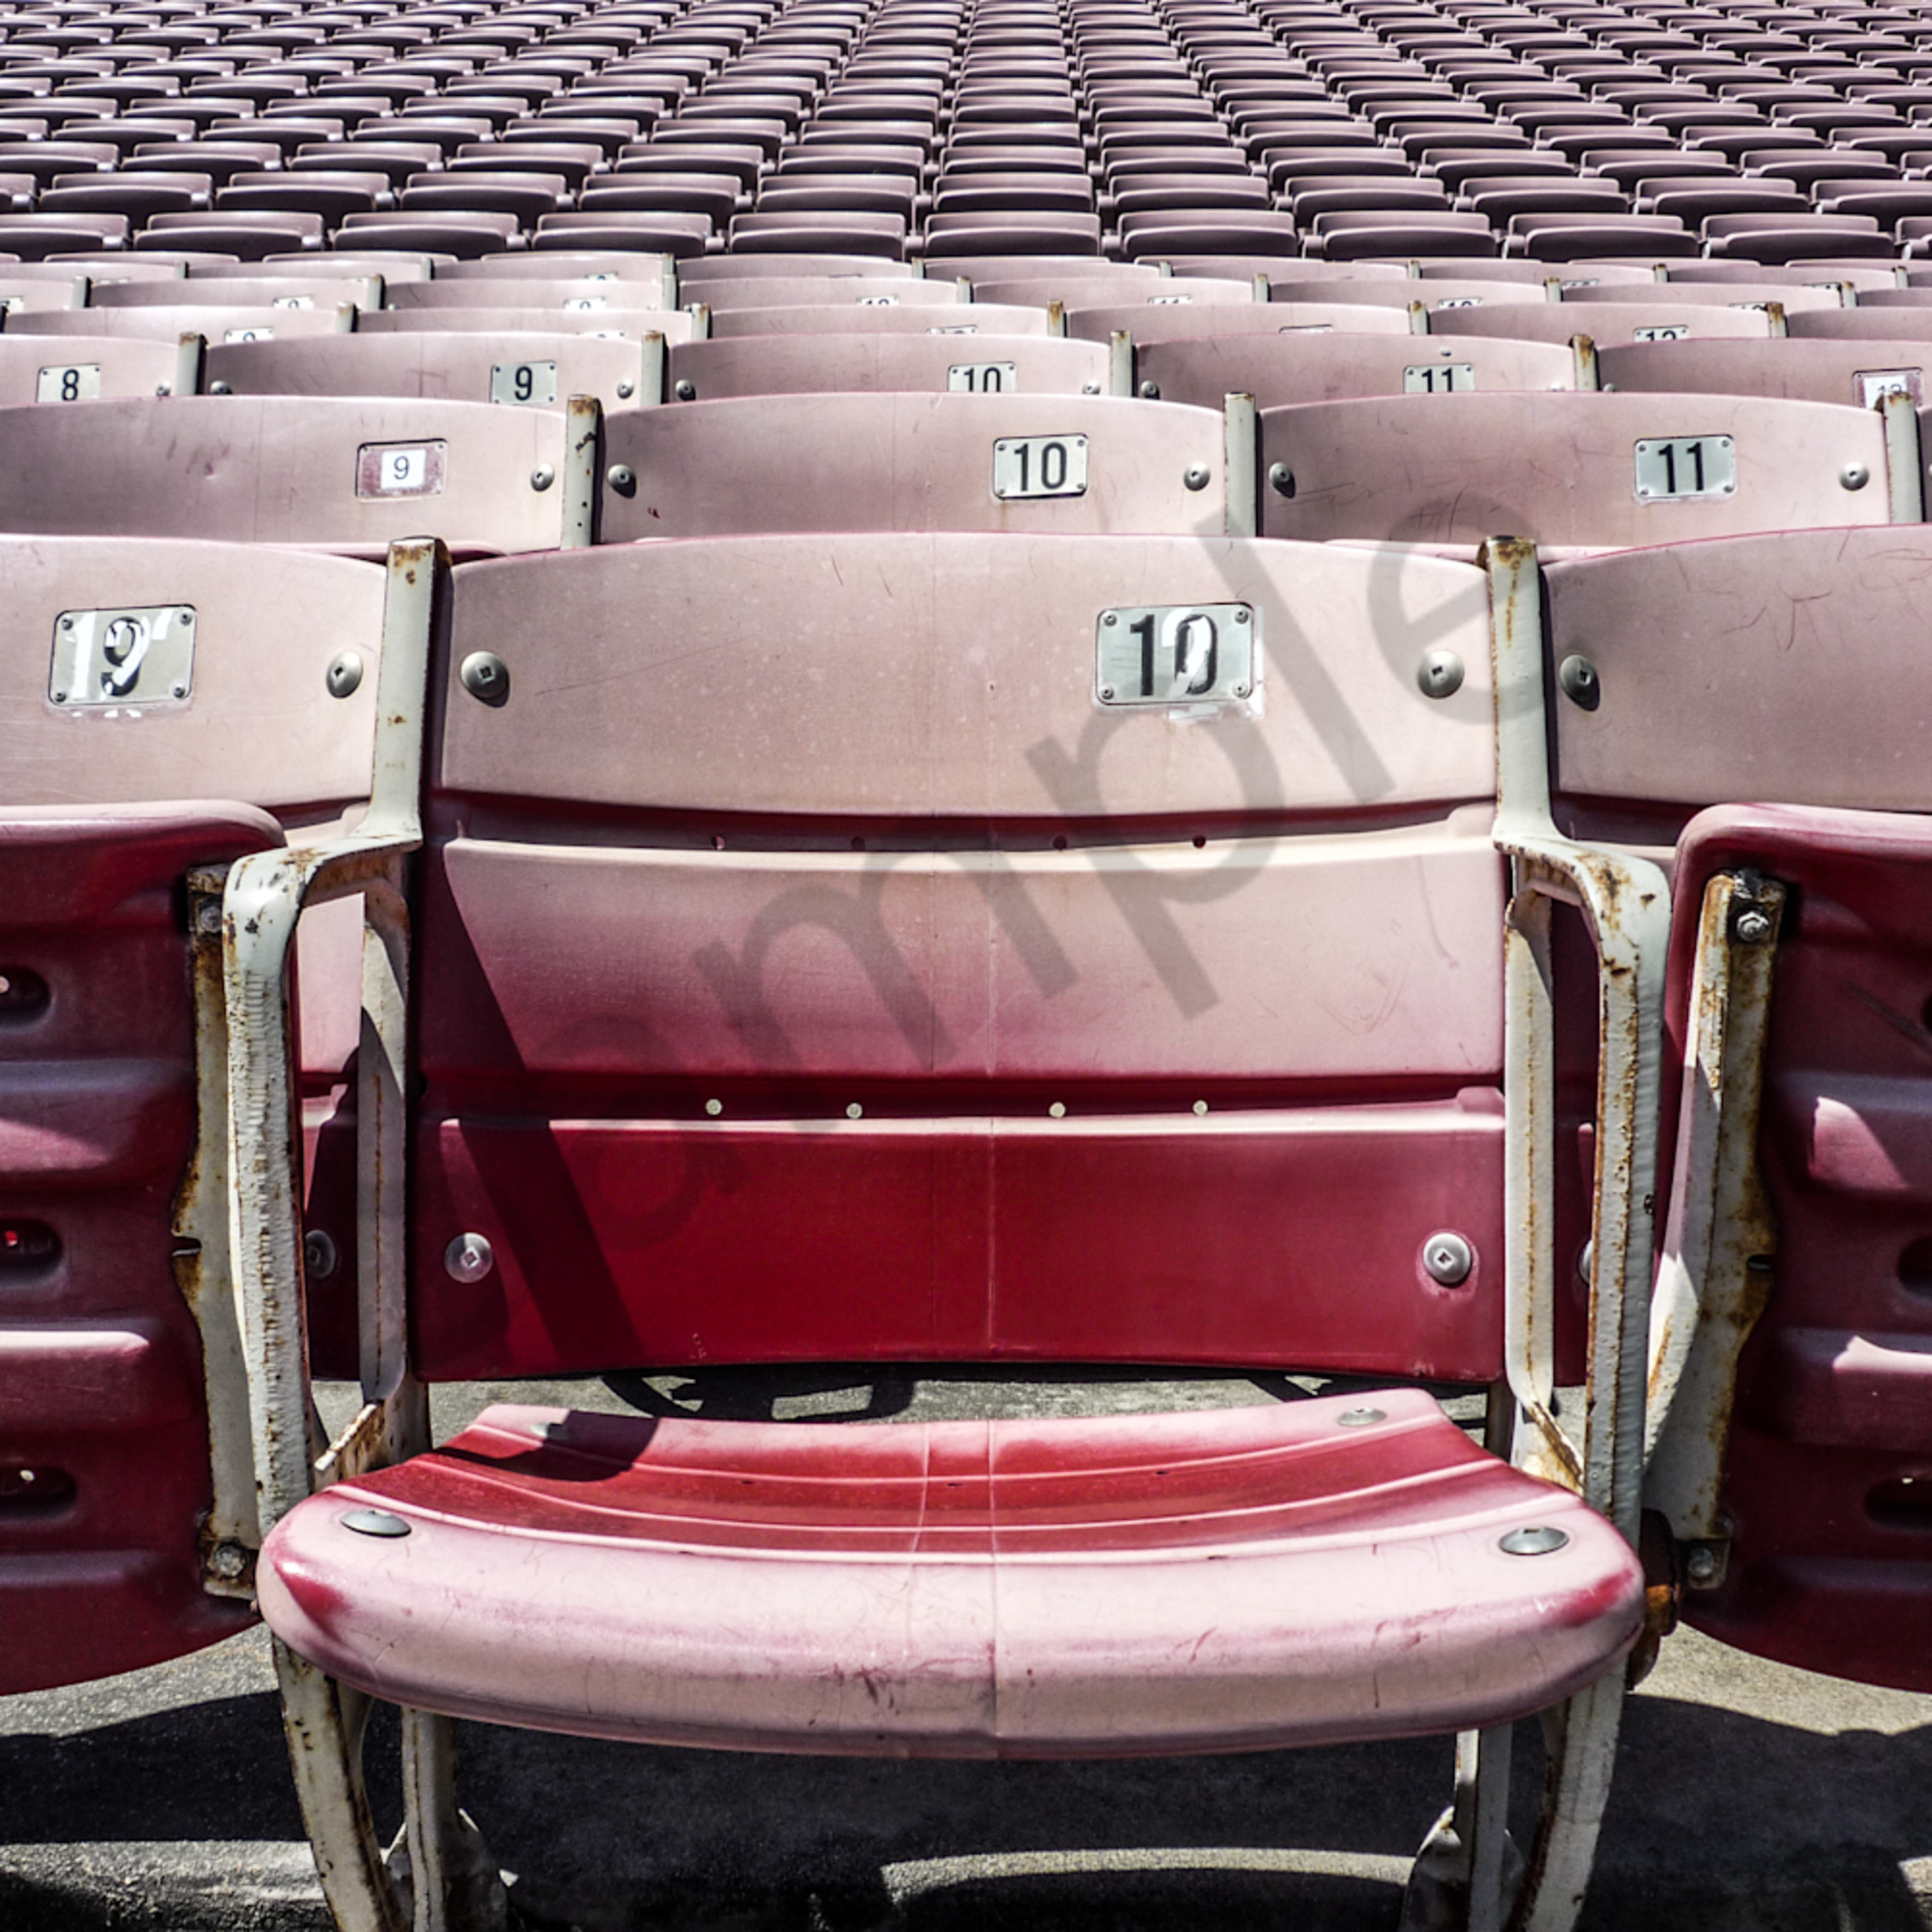 10 11 12 13 14 numbers stadium seat red close up number badge beat up rivets black number arena sports football pro college ncaa jfl baseball soccer seat down numeral aisle row angle front view horizontal view section c68l6g